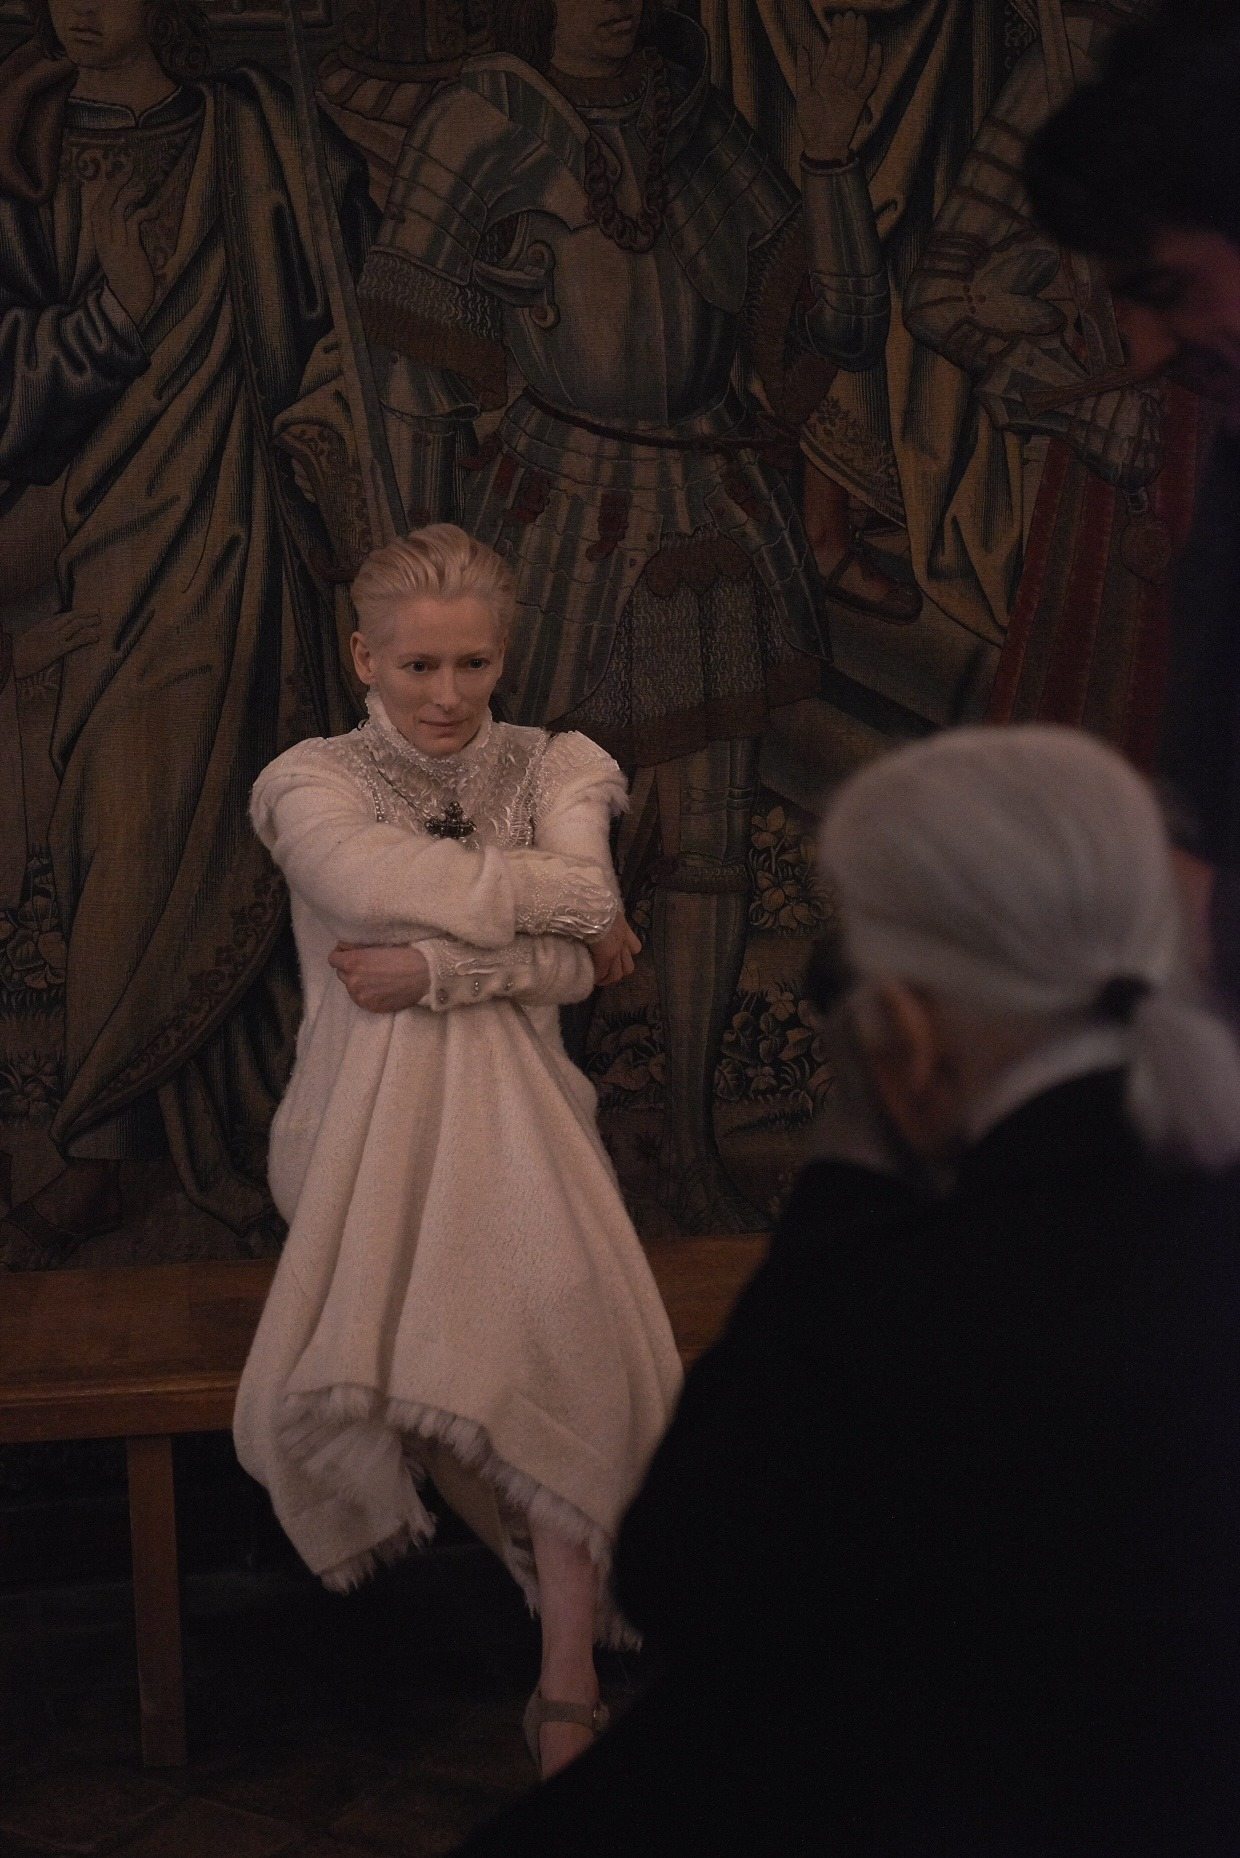 businessoffashion:  Karl Lagerfeld photographing Tilda Swinton for Chanel's 2012-13 Métiers d'Art Paris-Edimbourg campaign.